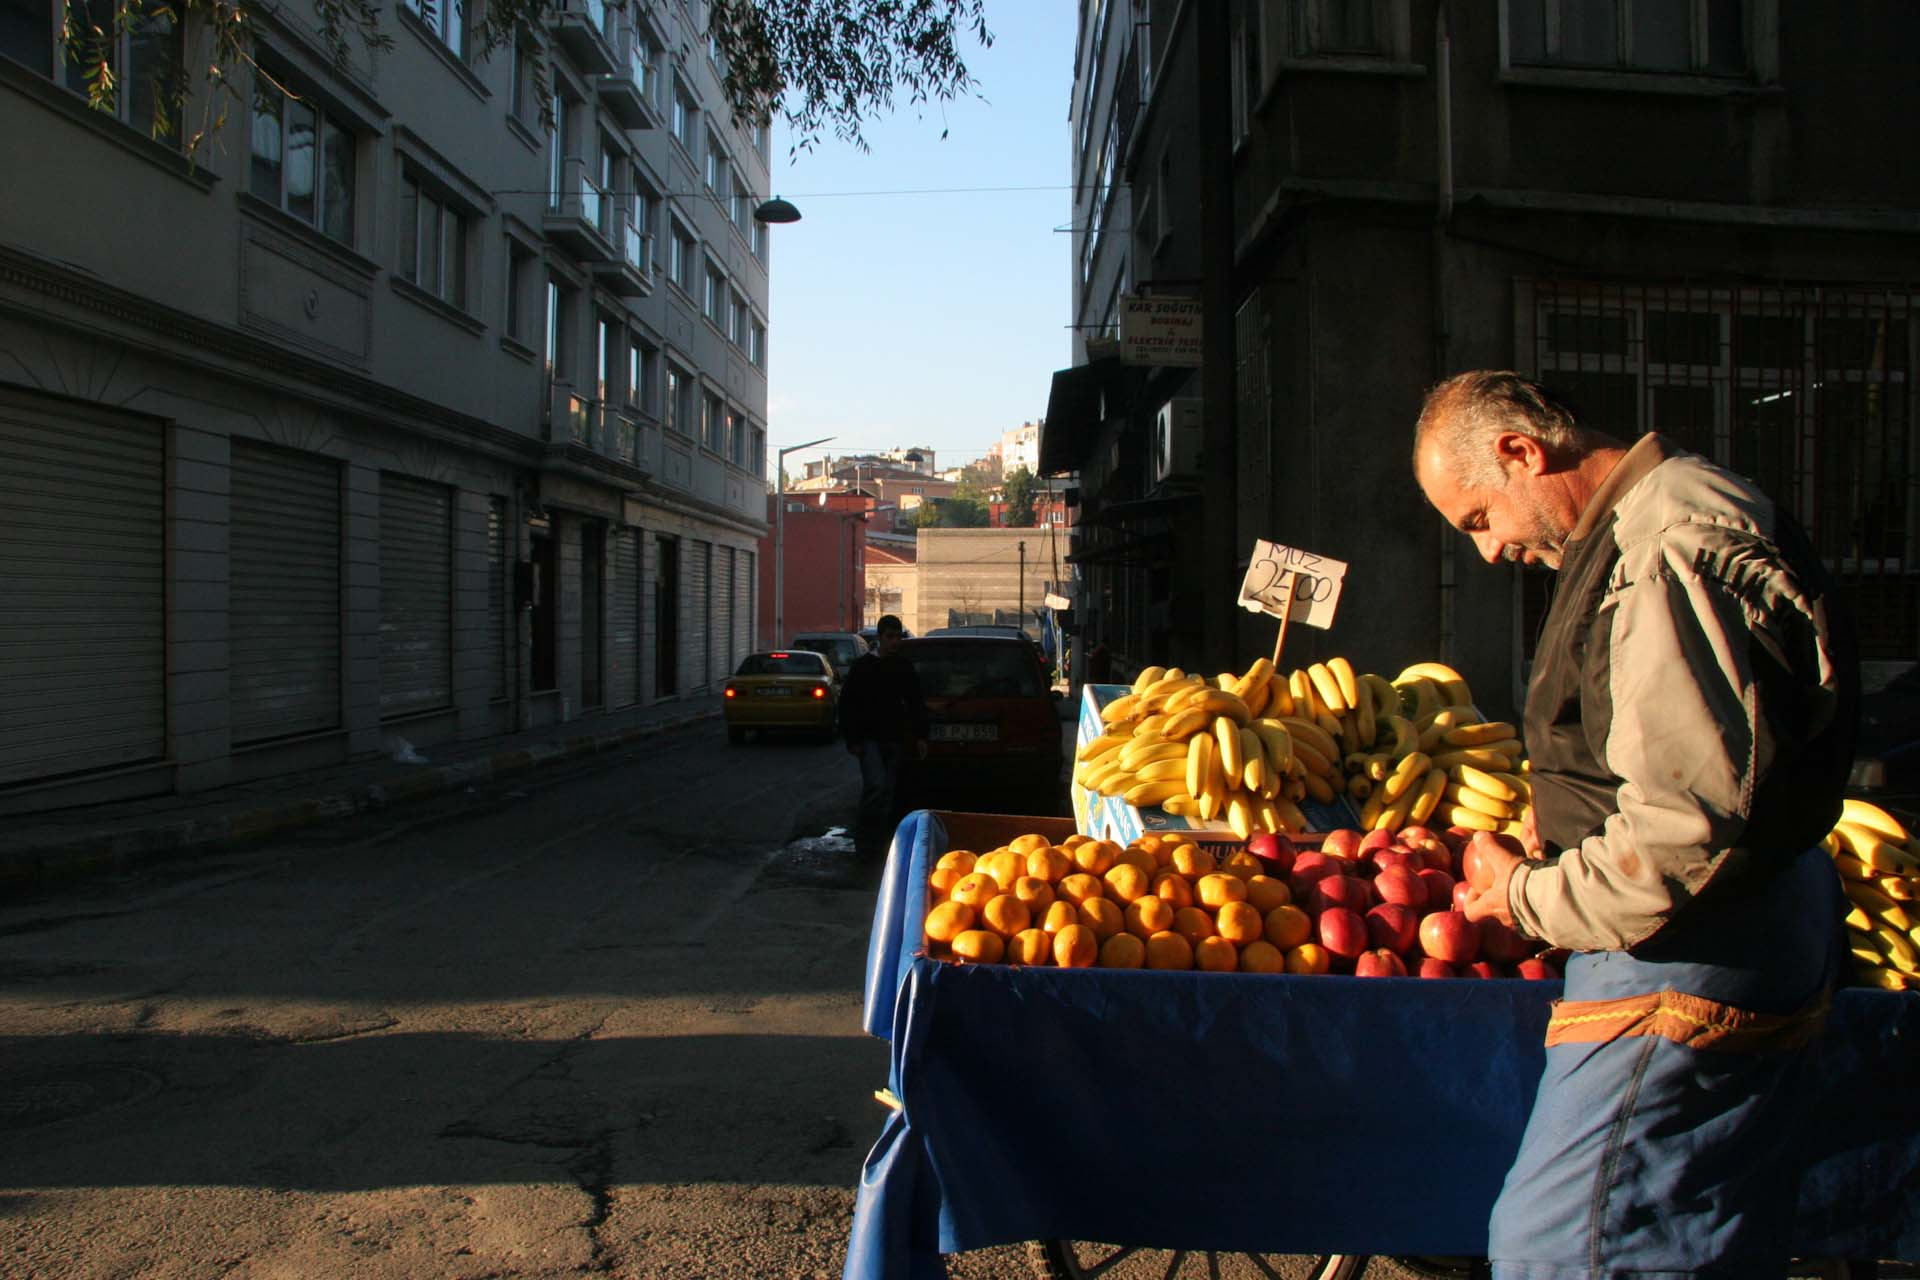 Street merchant polishing his fruits on the street of Tarlabaşı